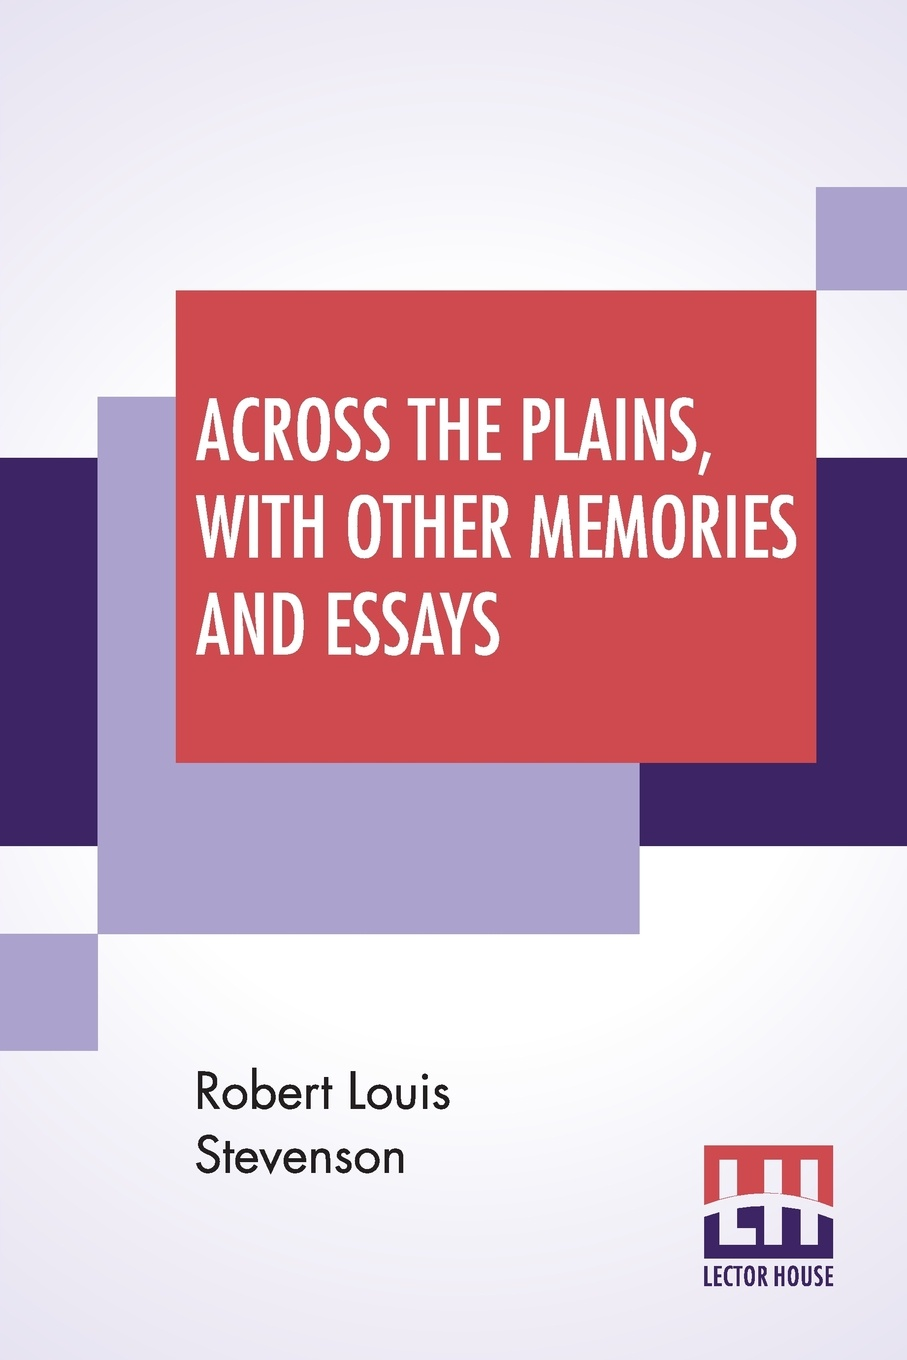 Stevenson Robert Louis Across The Plains, With Other Memories And Essays